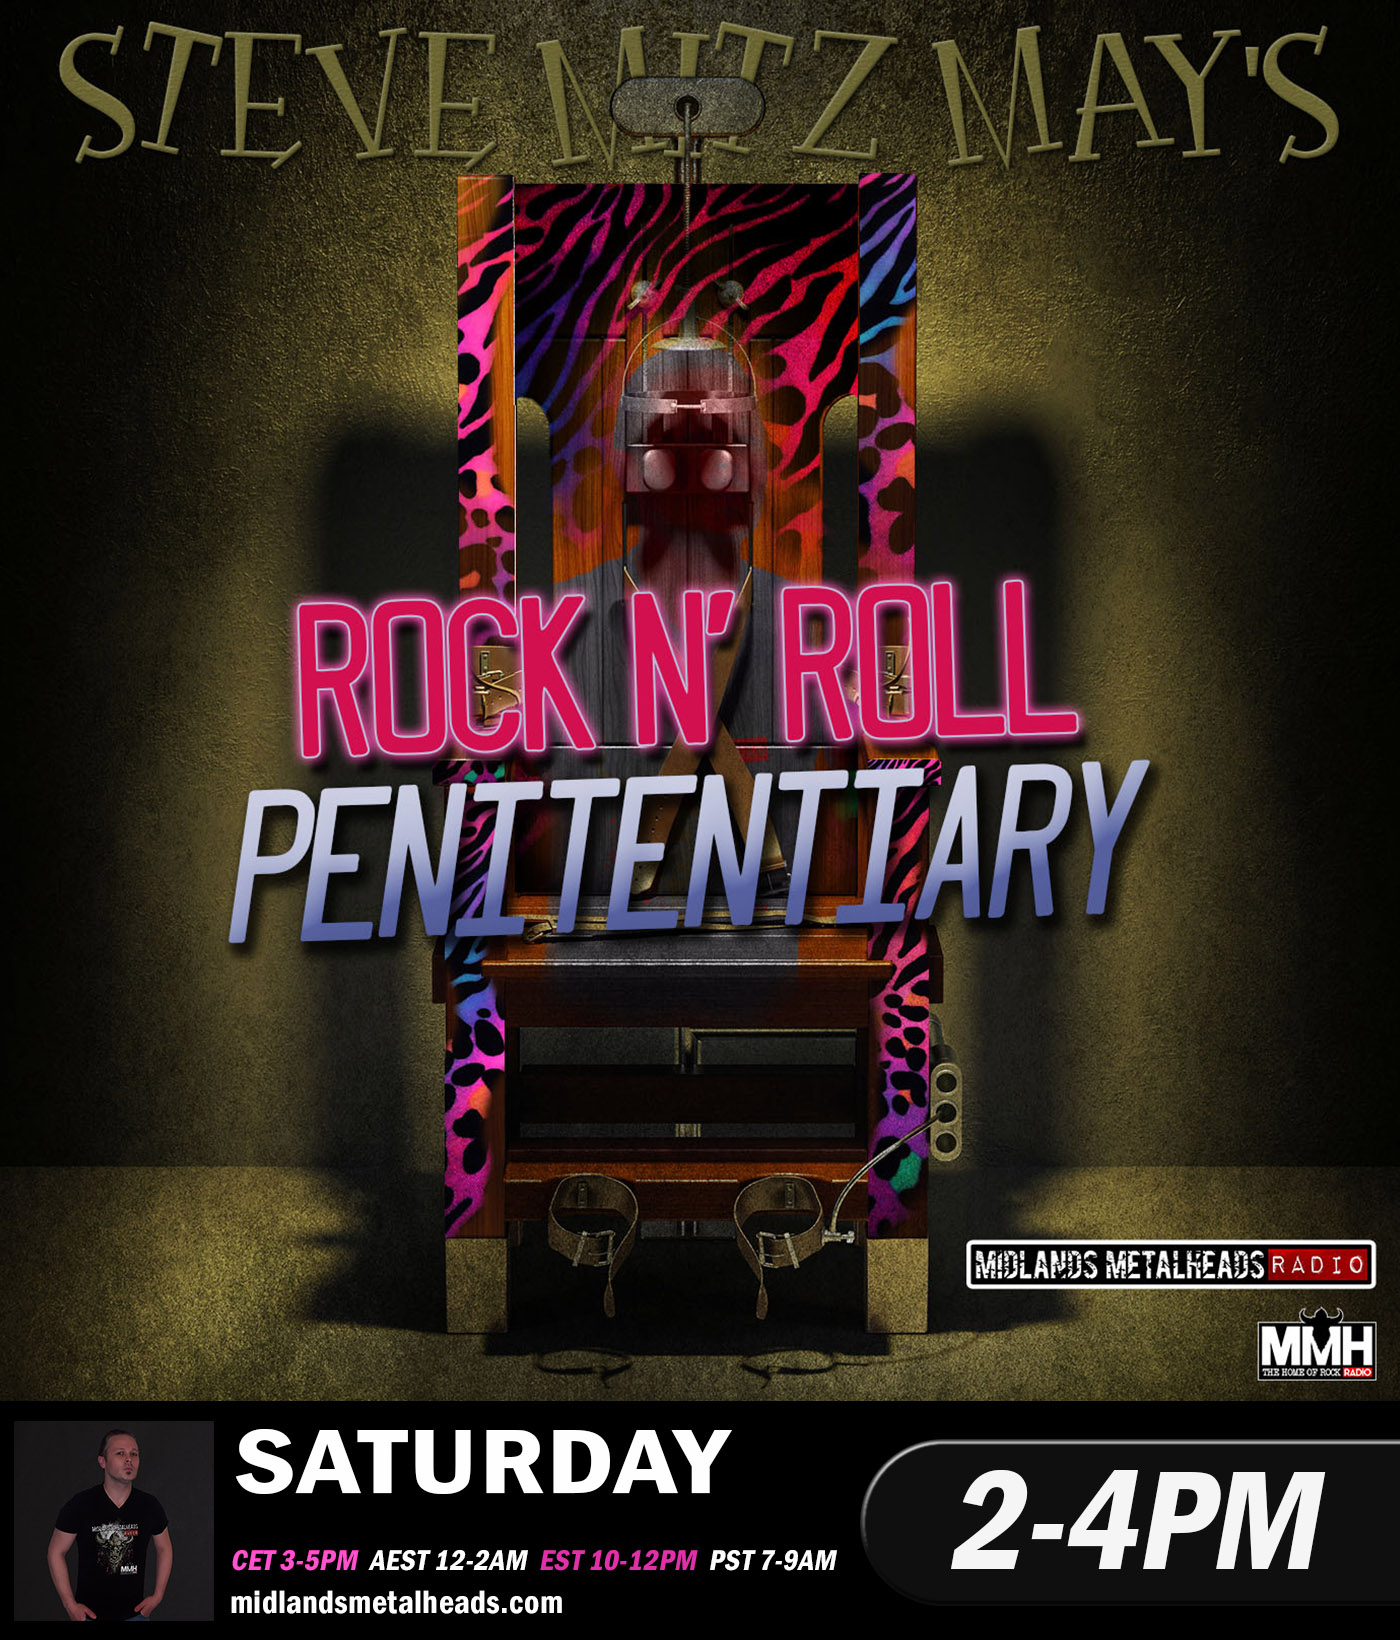 4Pm Cet To Pst the rock n roll penitentiary - dj mitz 27.07.19